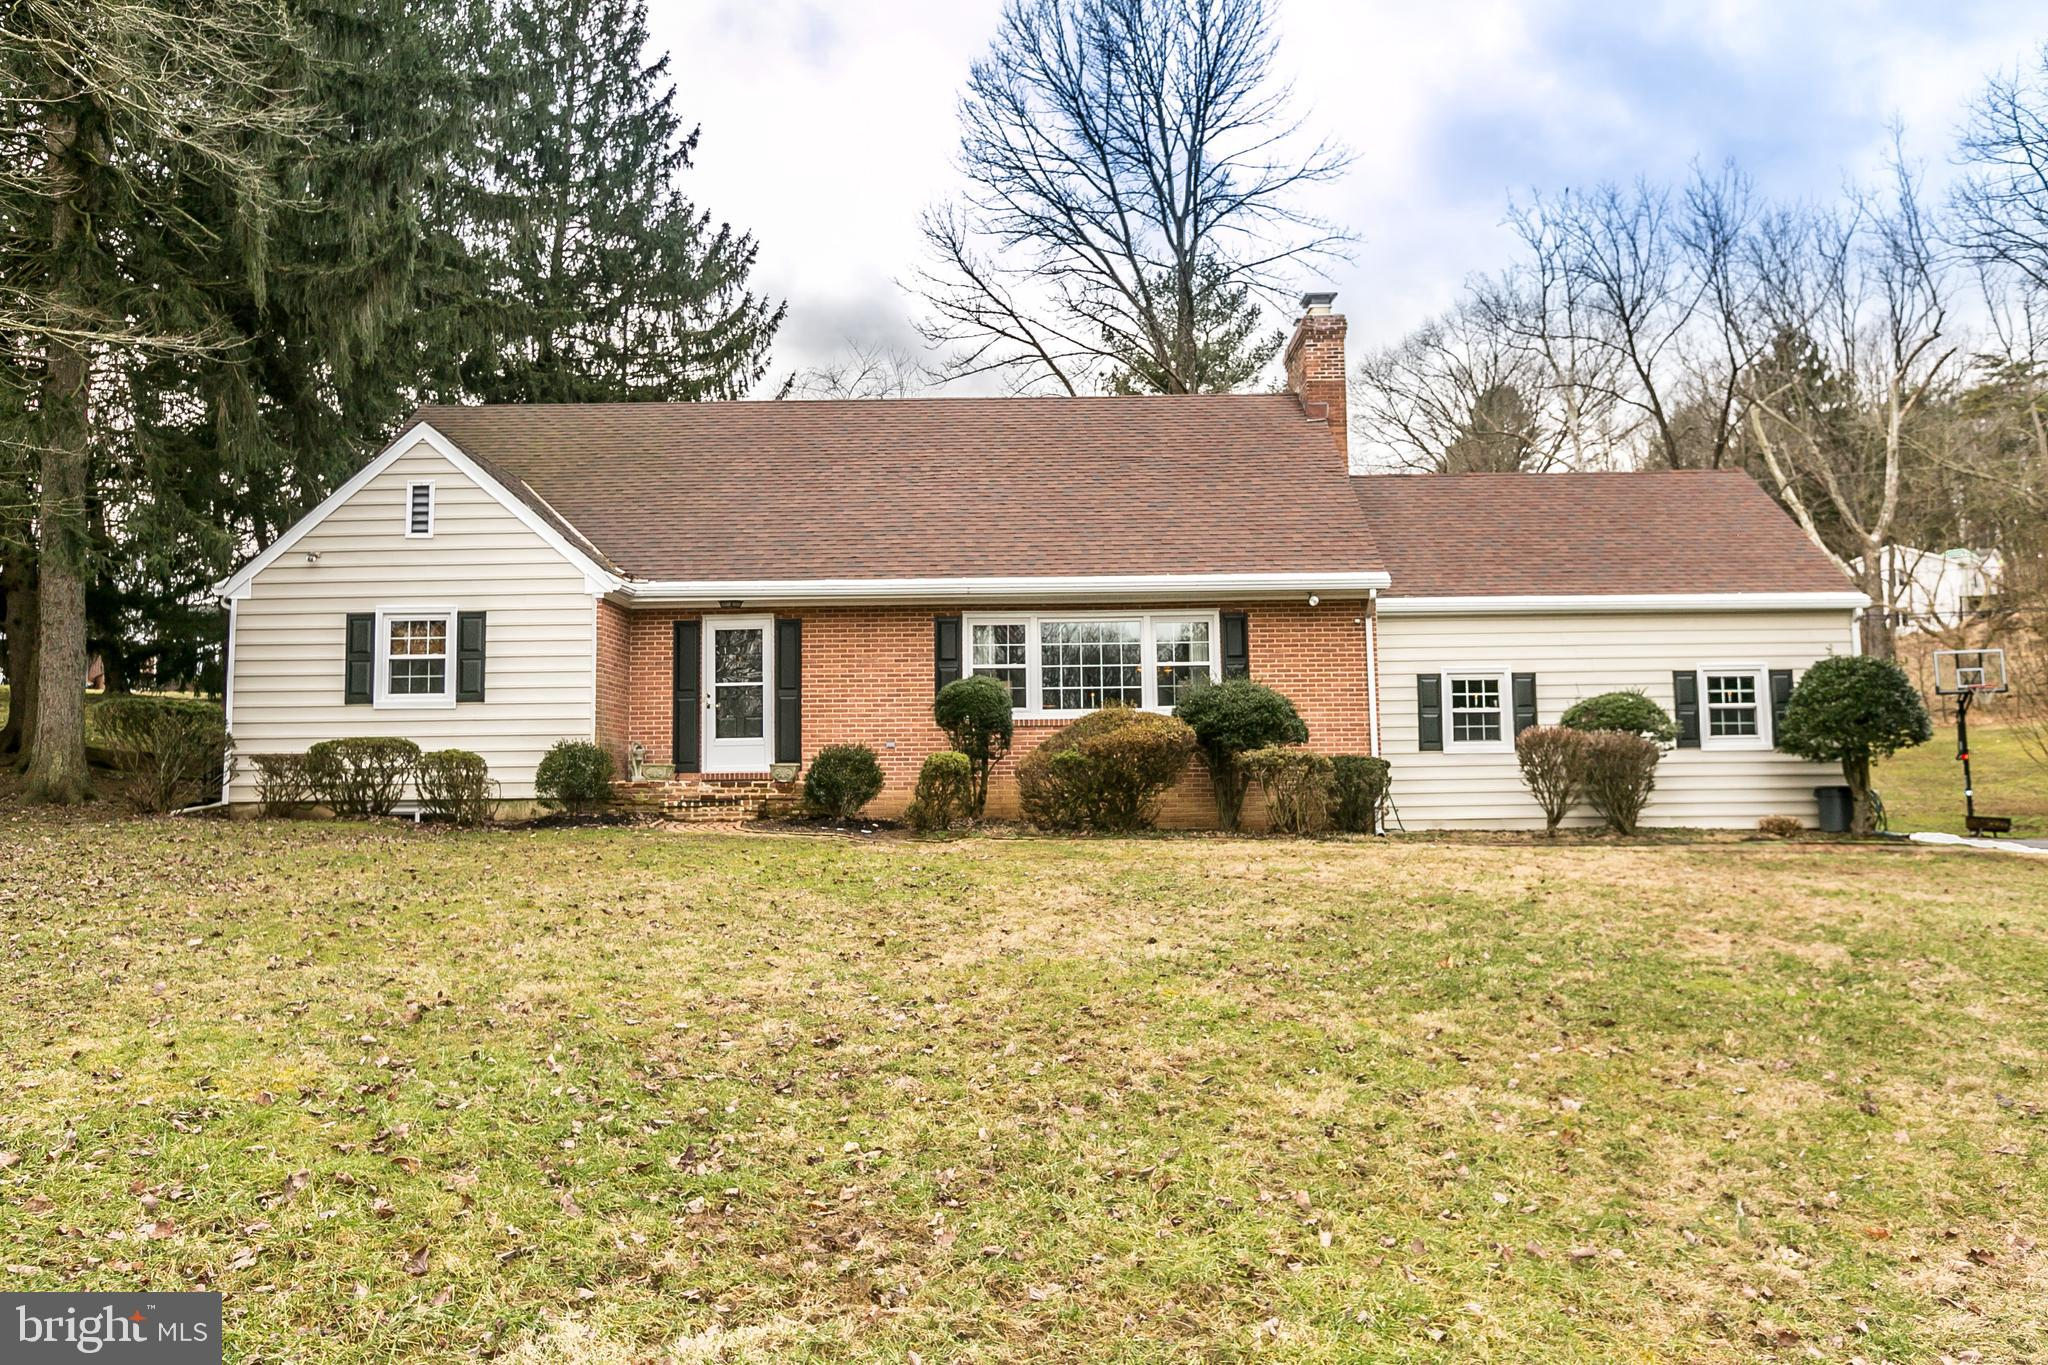 11310 OLD CARRIAGE ROAD, GLEN ARM, MD 21057